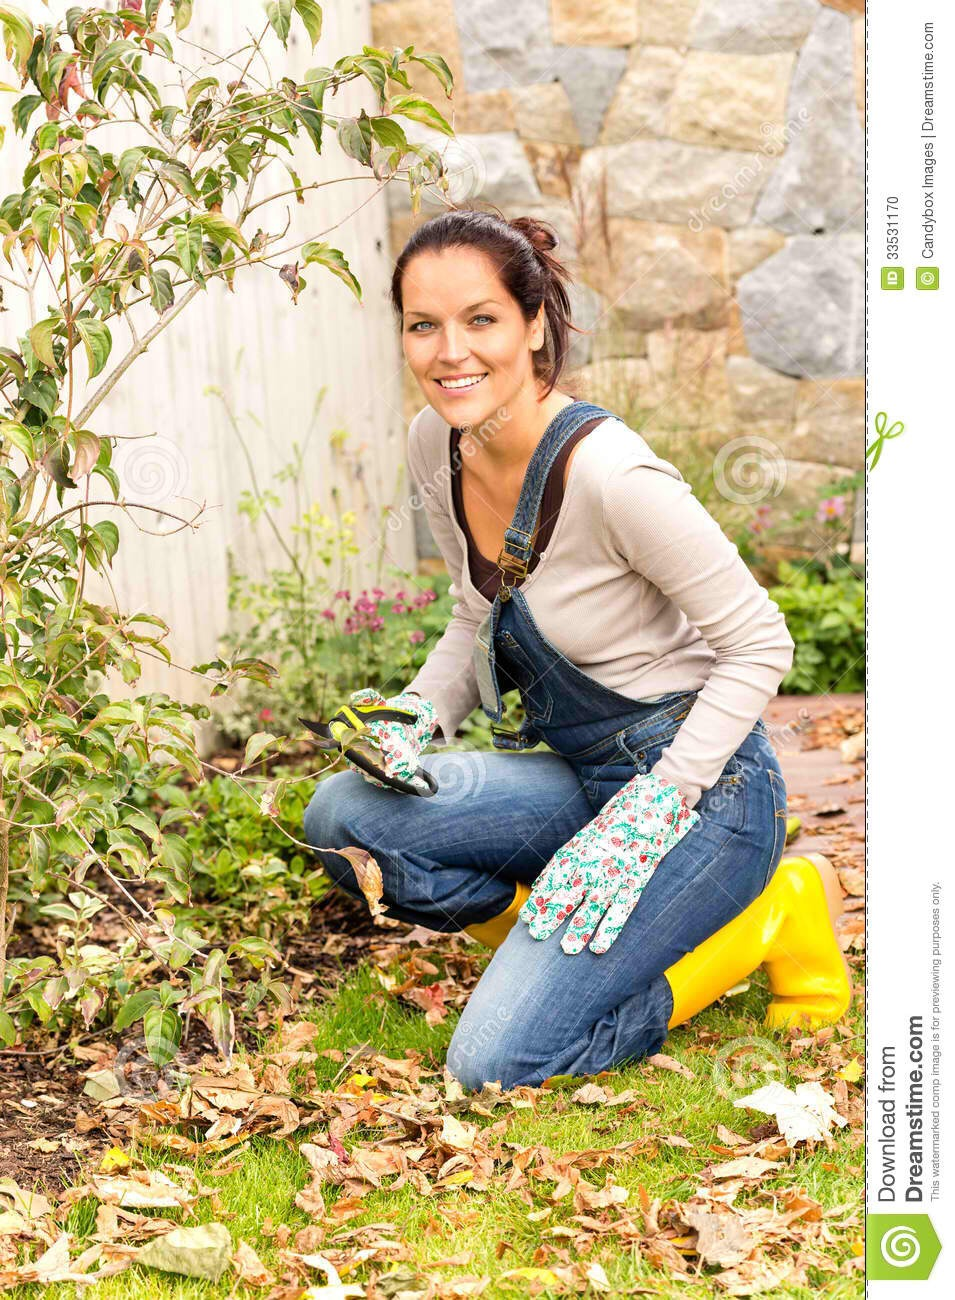 Spruce up your garden Add your beautiful grounds to another reason you're an amazing hostess. All that weeding, planting, and crawling around will help a 150-pound woman shed 113 calories in 25 minutes, helping you shrink while your garden grows.